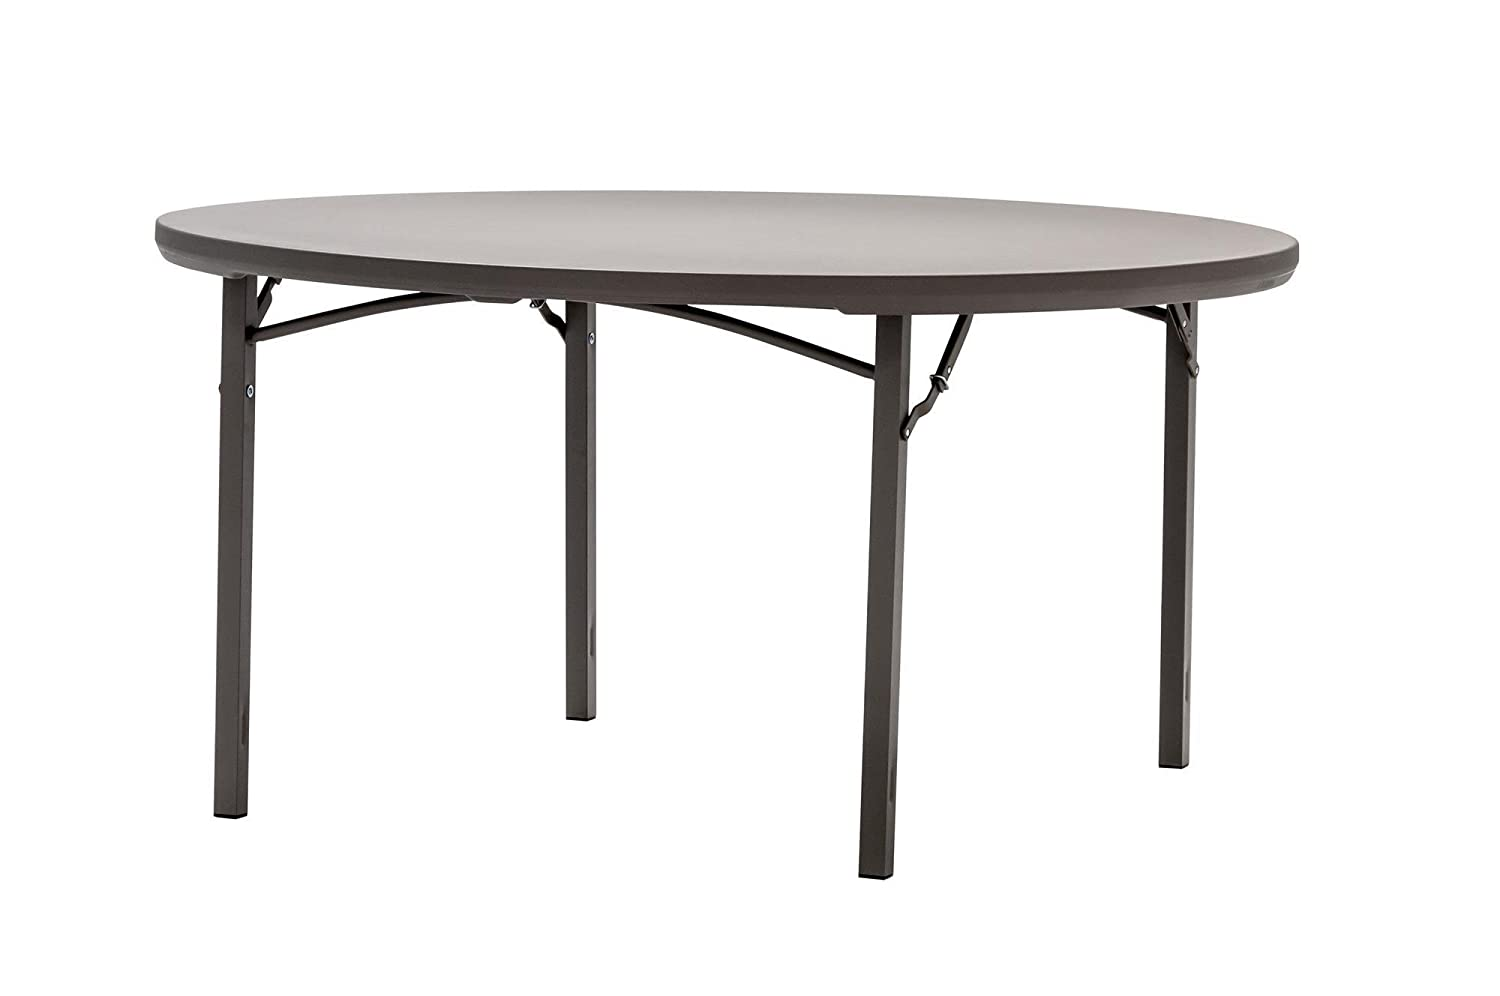 ZOWN Premium Commercial 60 5 ft Round Blow Mold Banquet Folding Table, Brown